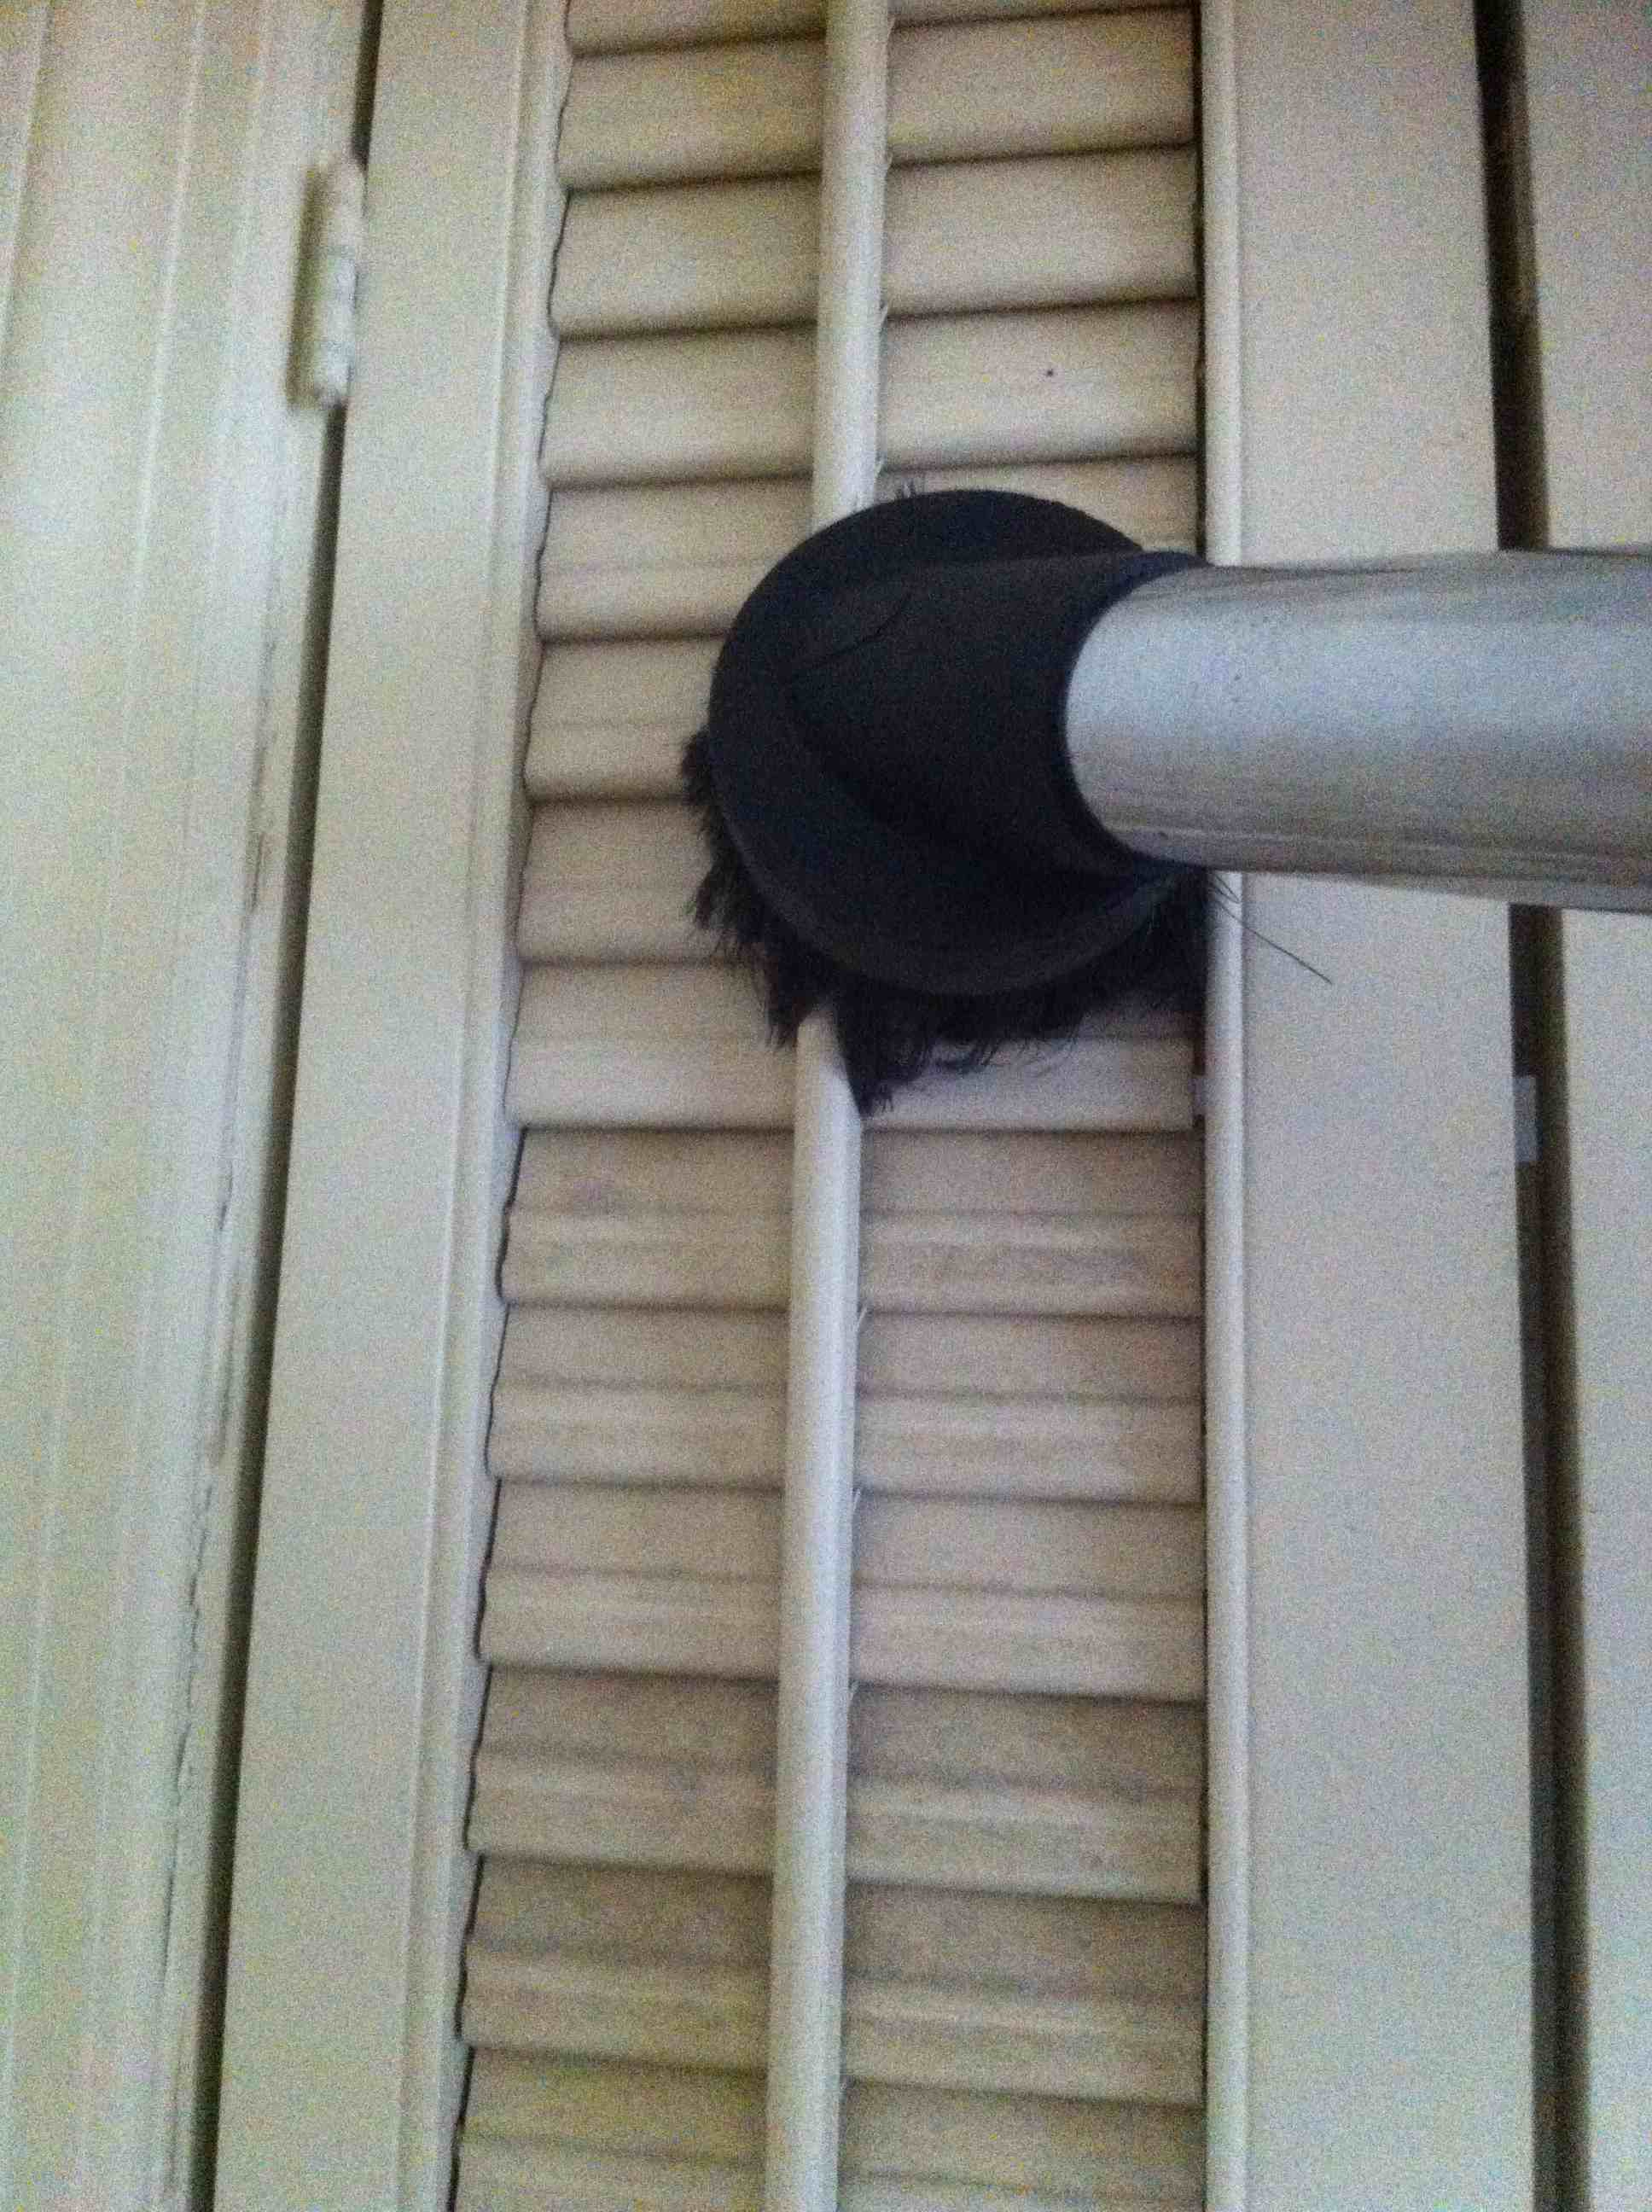 Yes, we gladly clean blinds and other dirty surfaces!